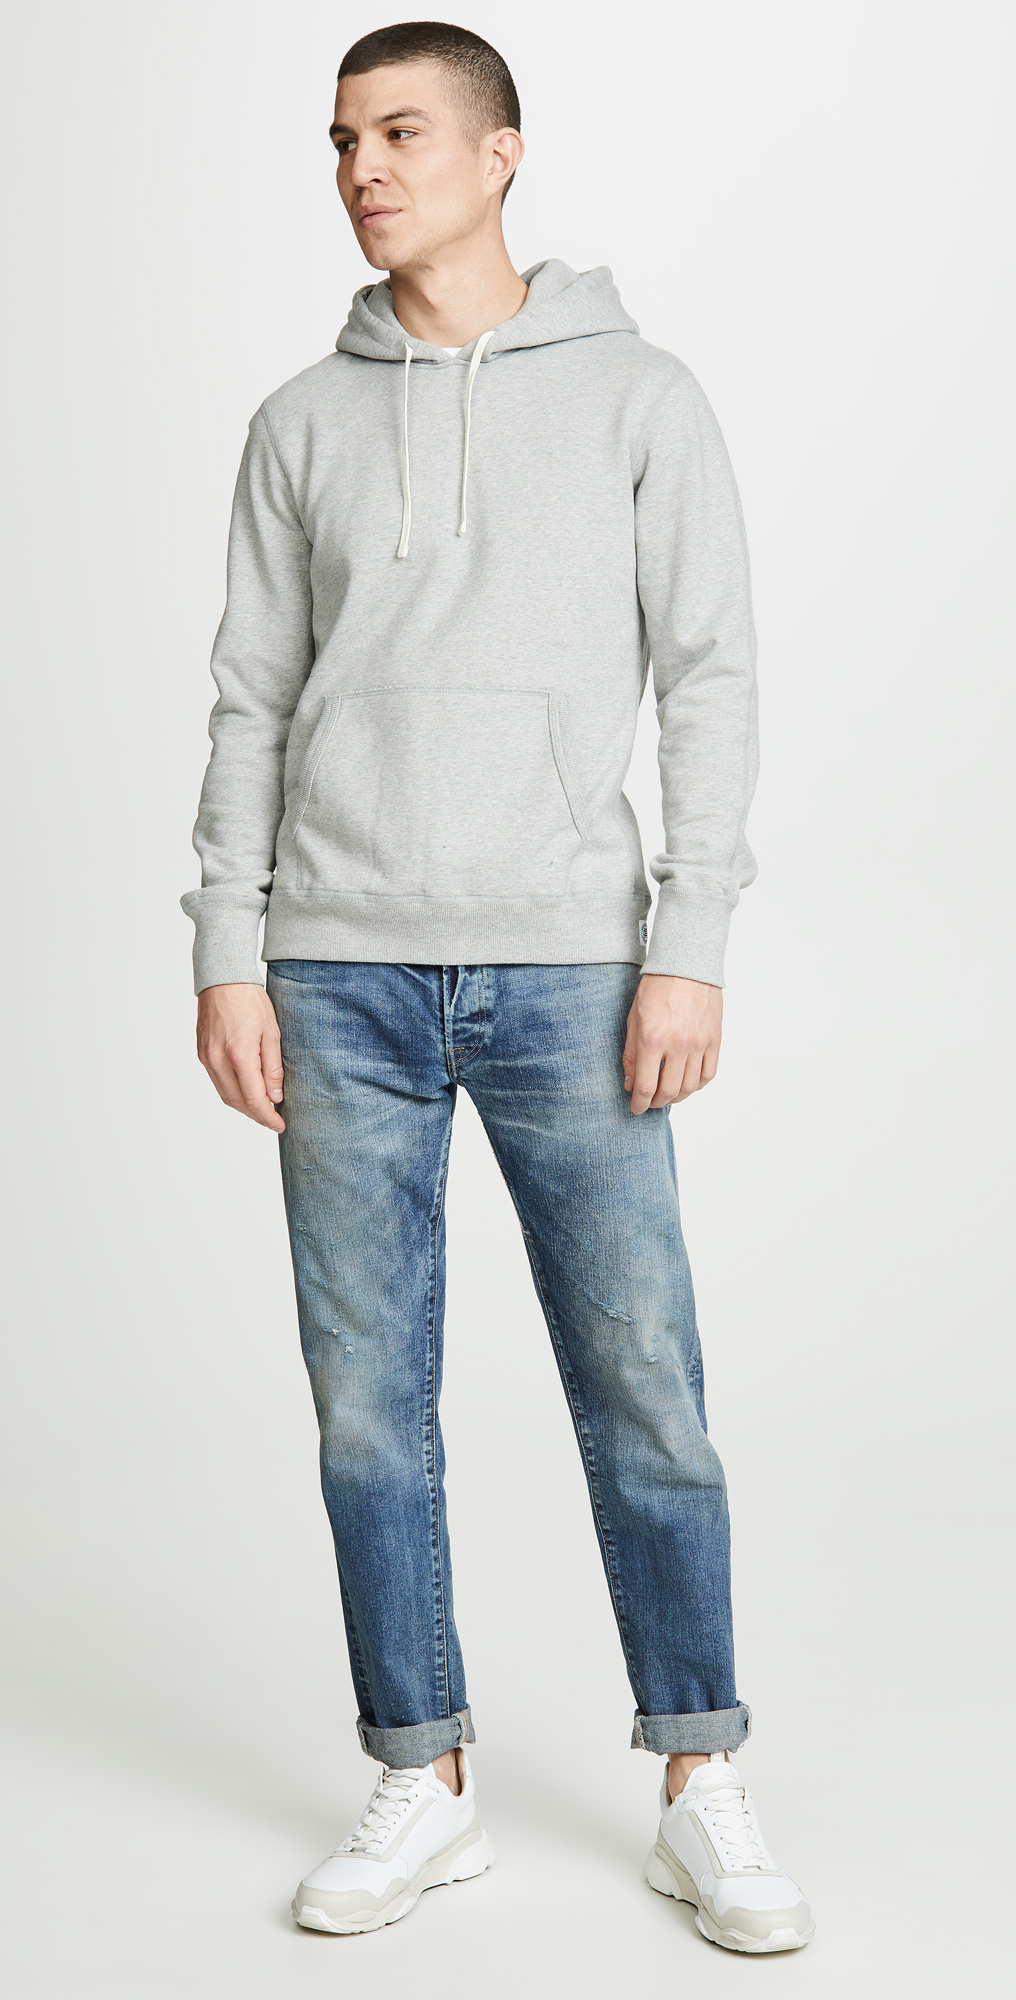 Reigning Champ Mid Weight Terry Pullover Hoodie | EASTDANE